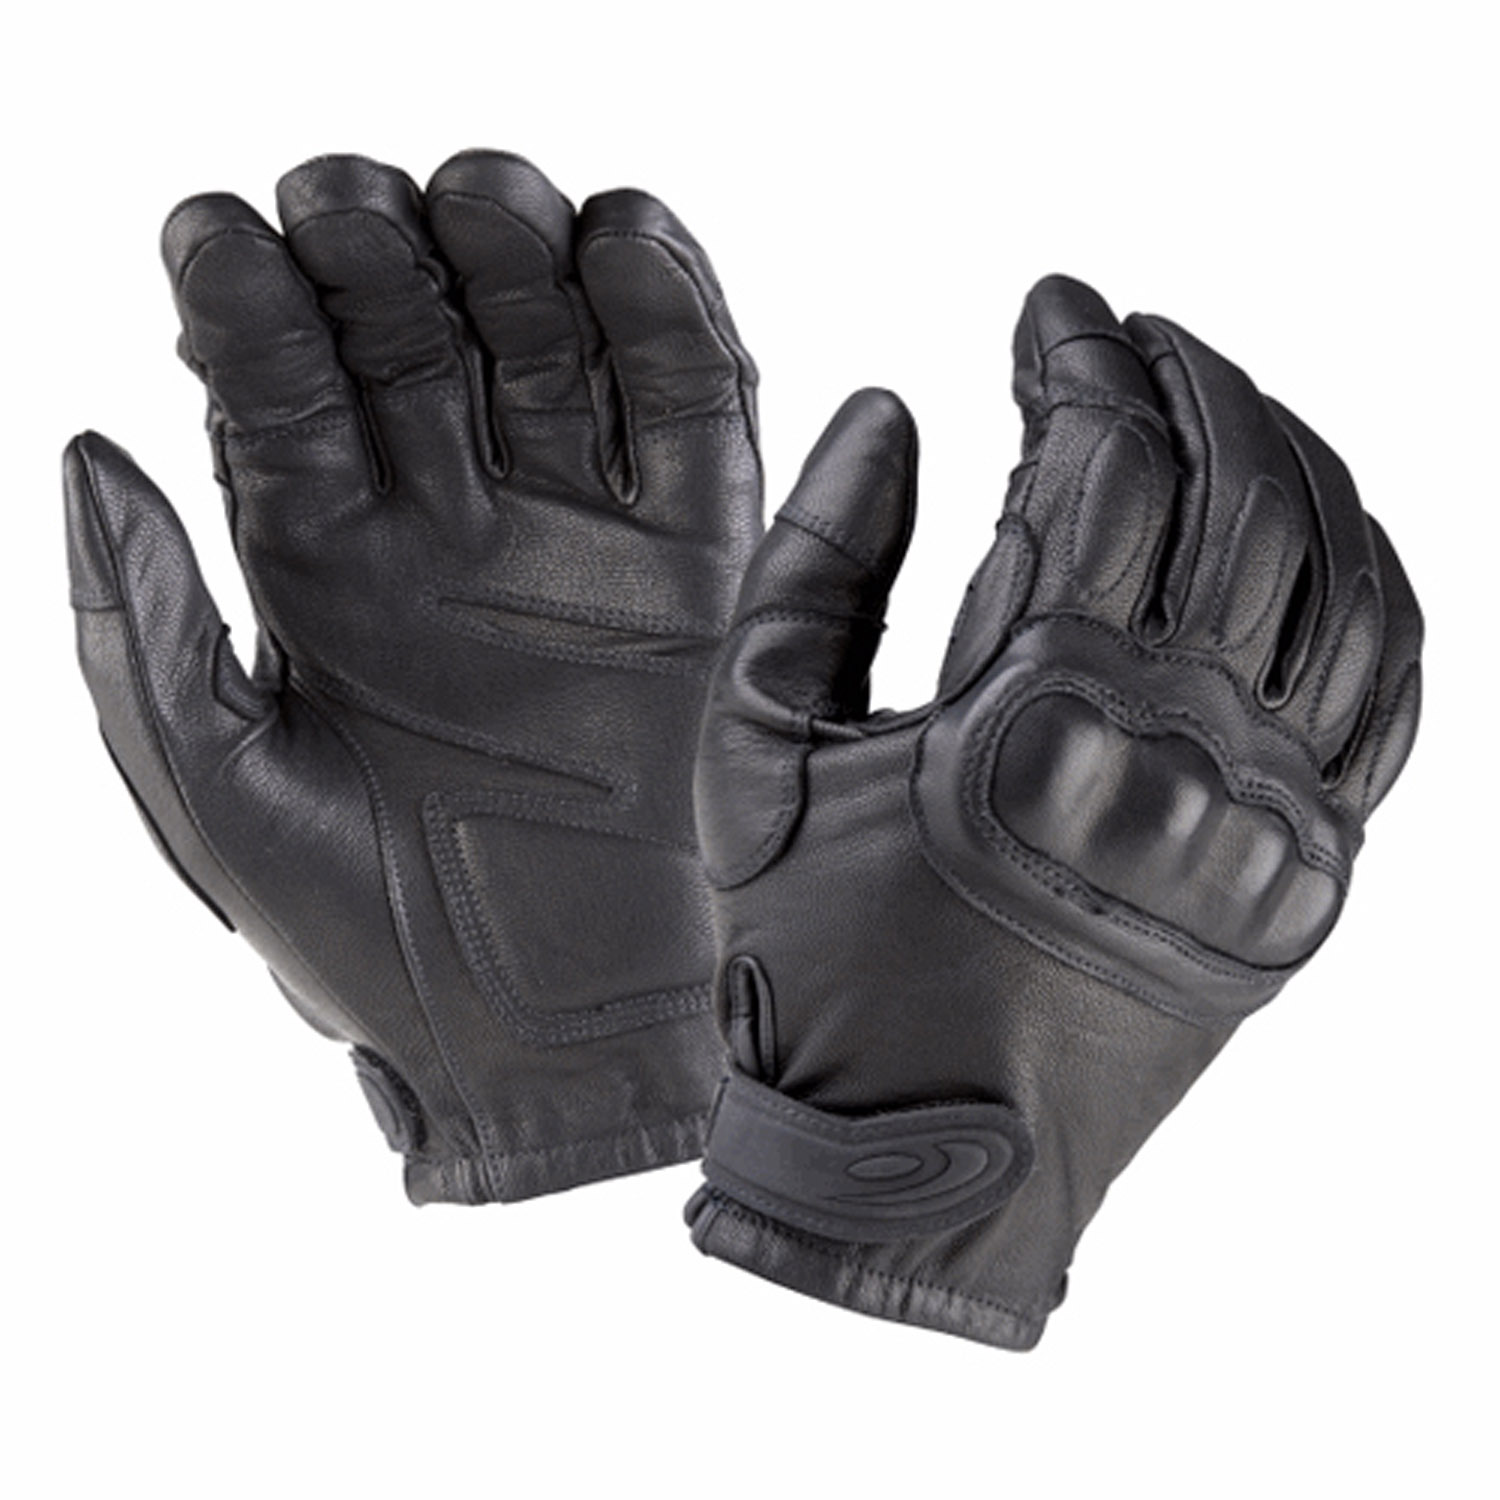 Black leather gloves meaning - Aliexpress Military Tactical Gloves Half Finger Carbon Knuckle Leather 3 Color Turtle S Army Police Mountain